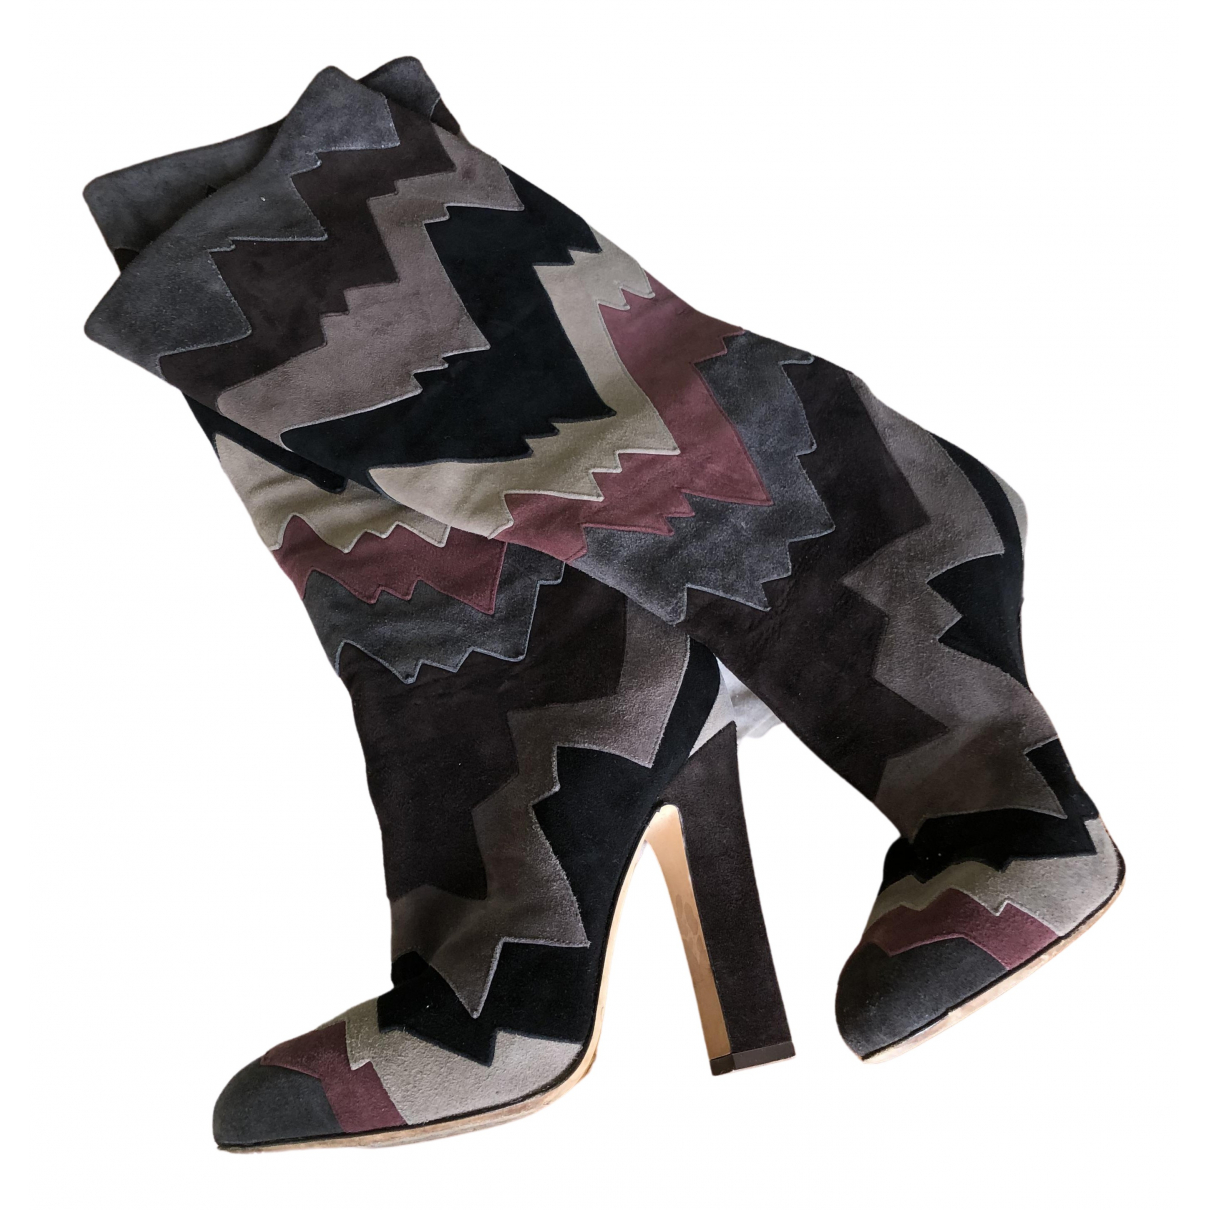 Jimmy Choo N Multicolour Suede Boots for Women 36 EU